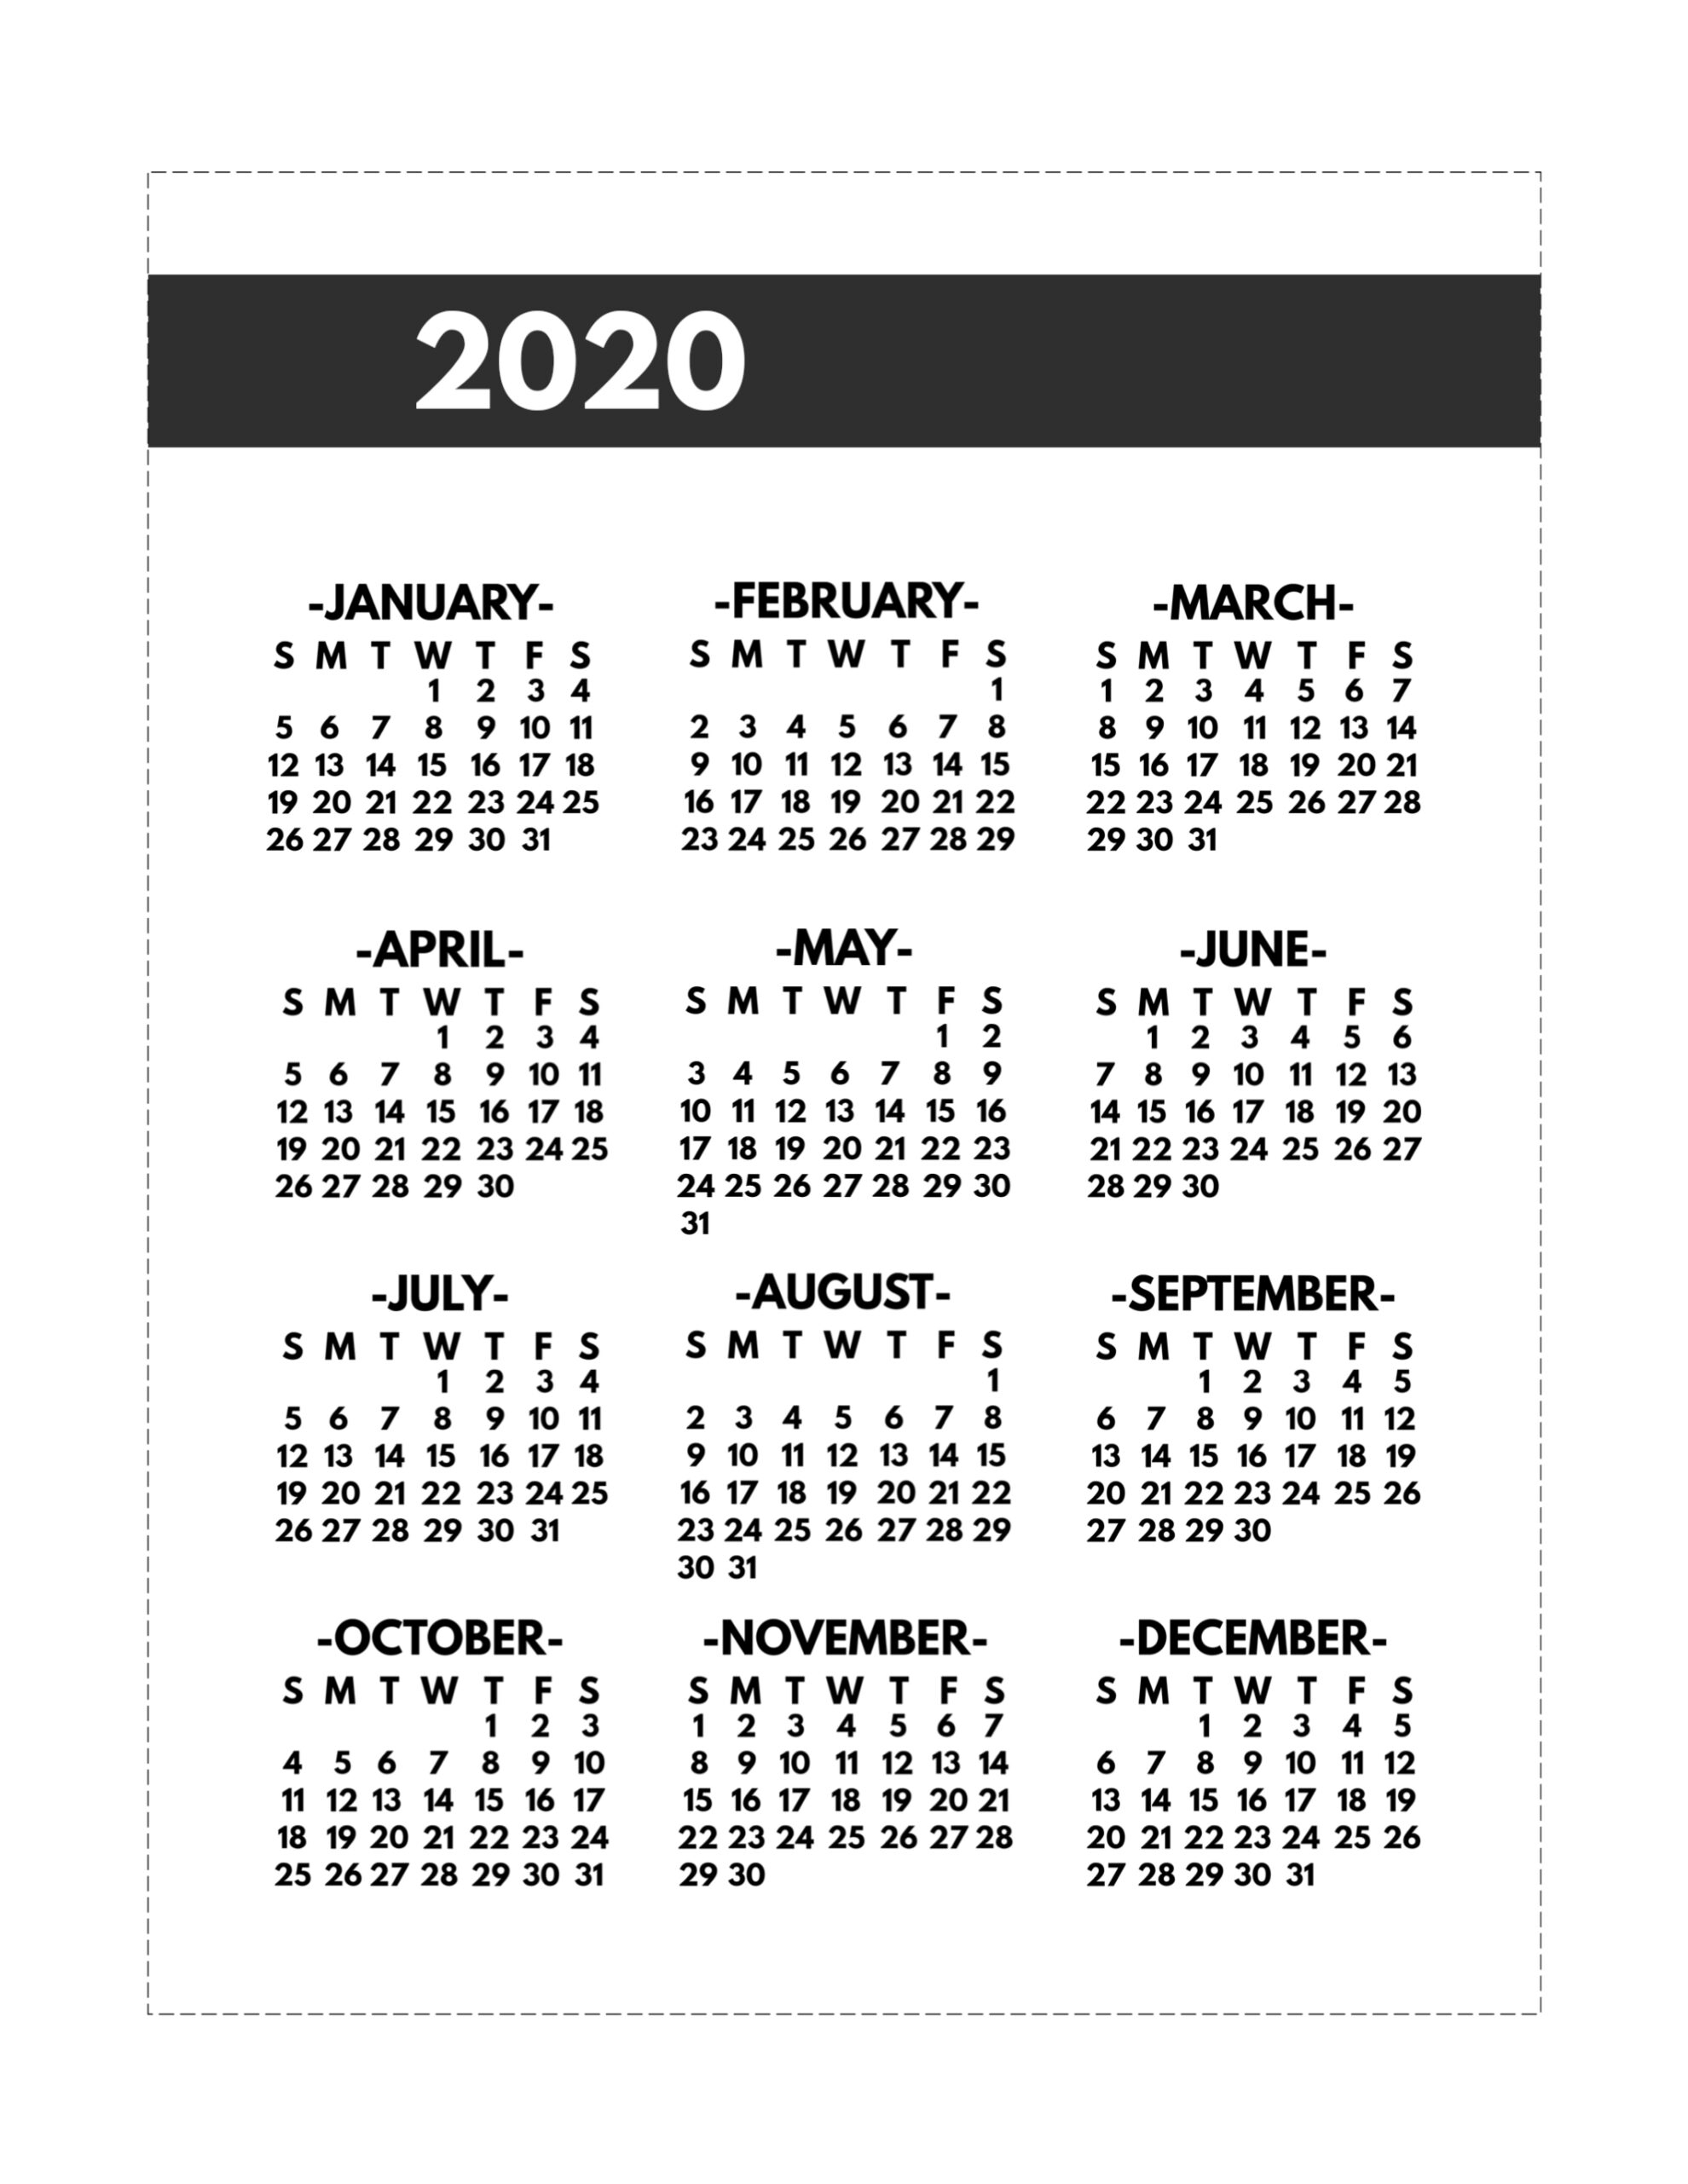 2020 Printable One Page Year At A Glance Calendar - Paper pertaining to 2020 Year At A Glance Calendar Free